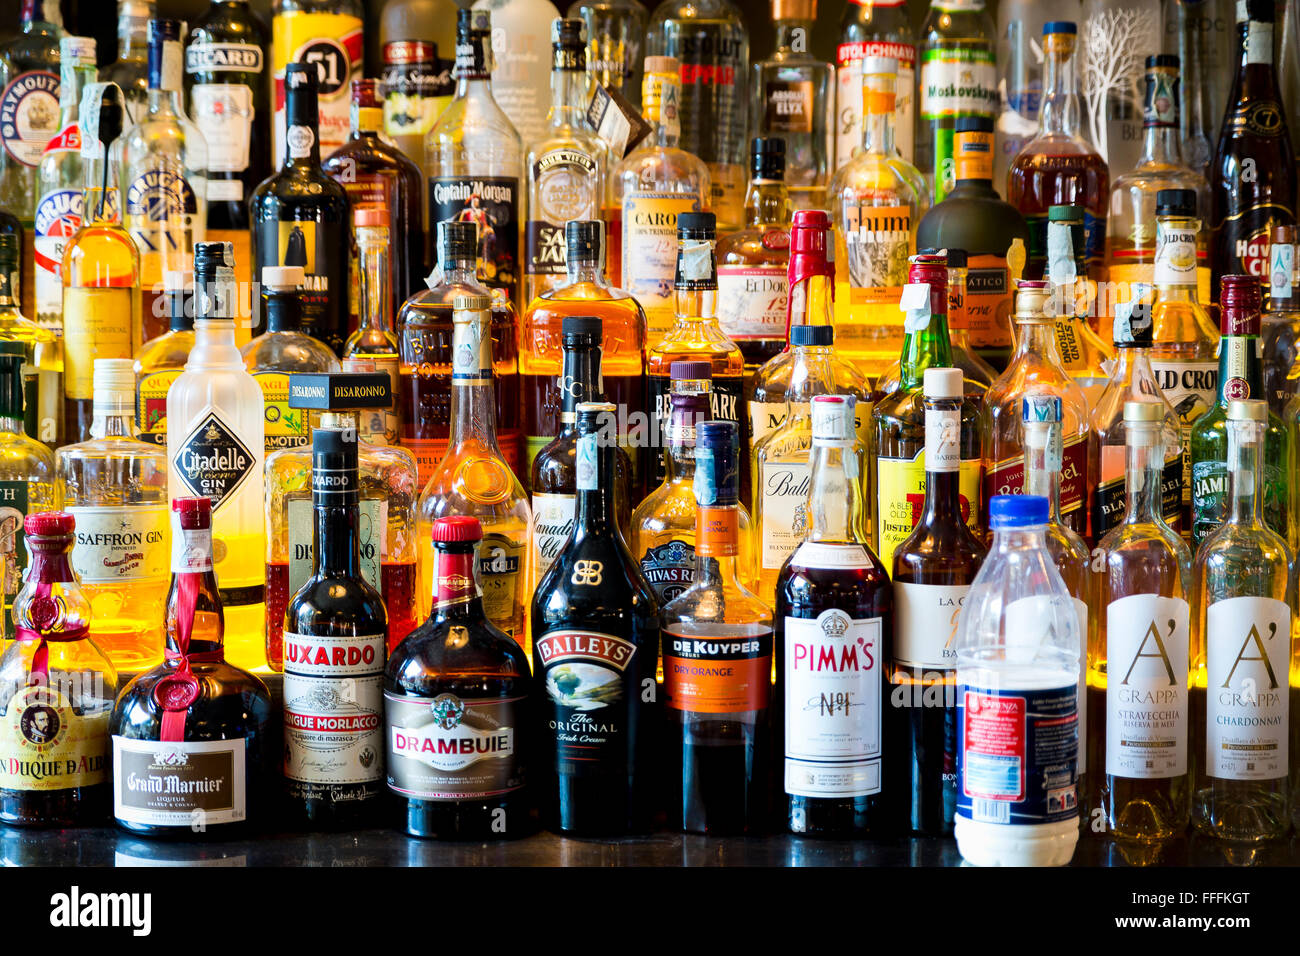 Hard Alcohol Bottles In A Bar Stock Photo Royalty Free Image 95616328 Alamy